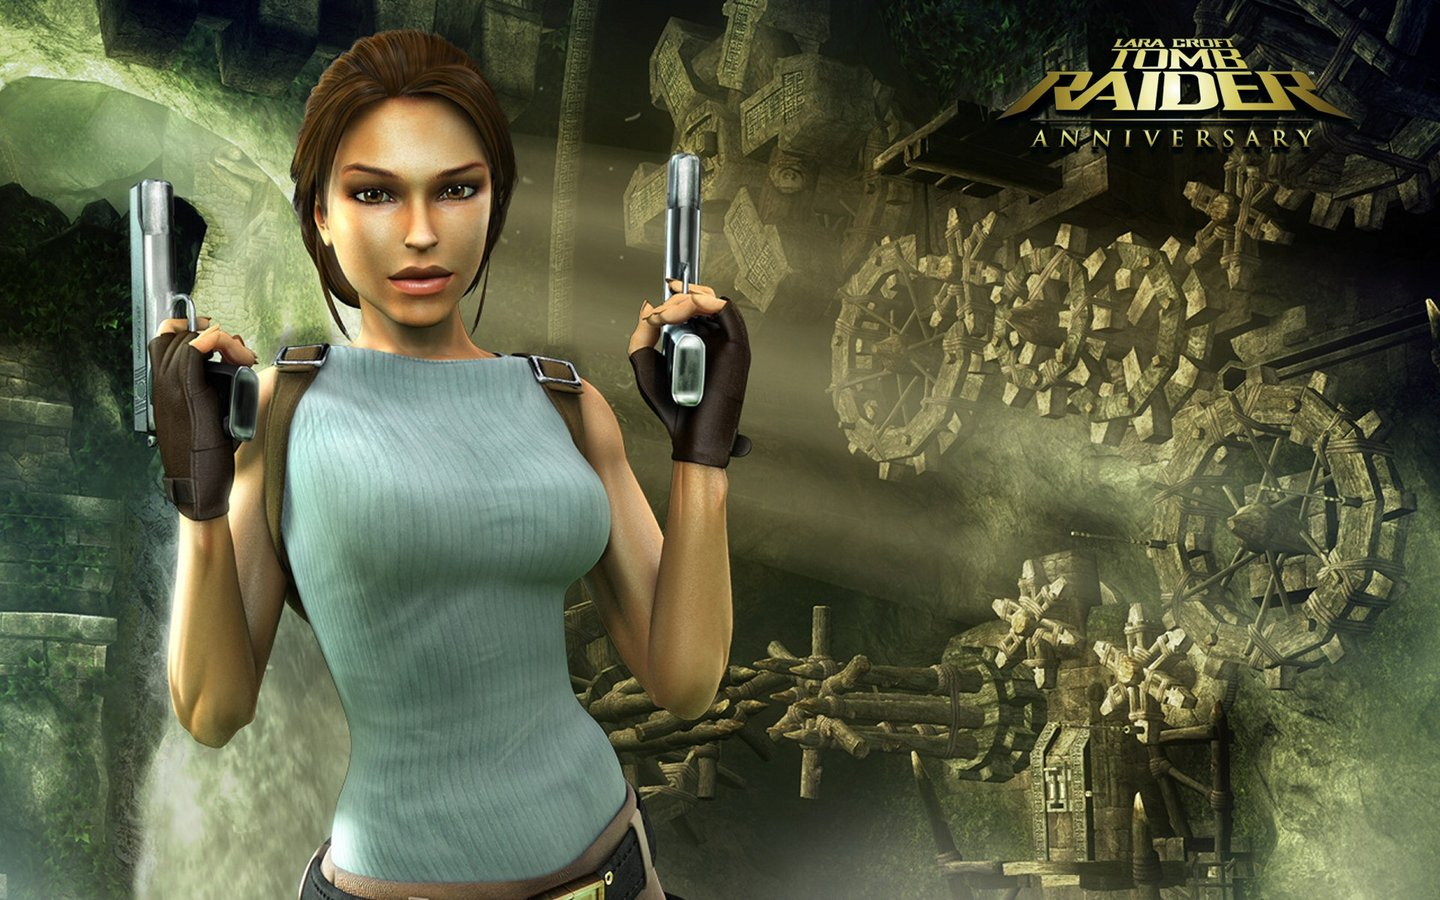 Tomb Raider  Anniversary - Xbox 360 WallpaperTomb Raider Anniversary Wallpaper